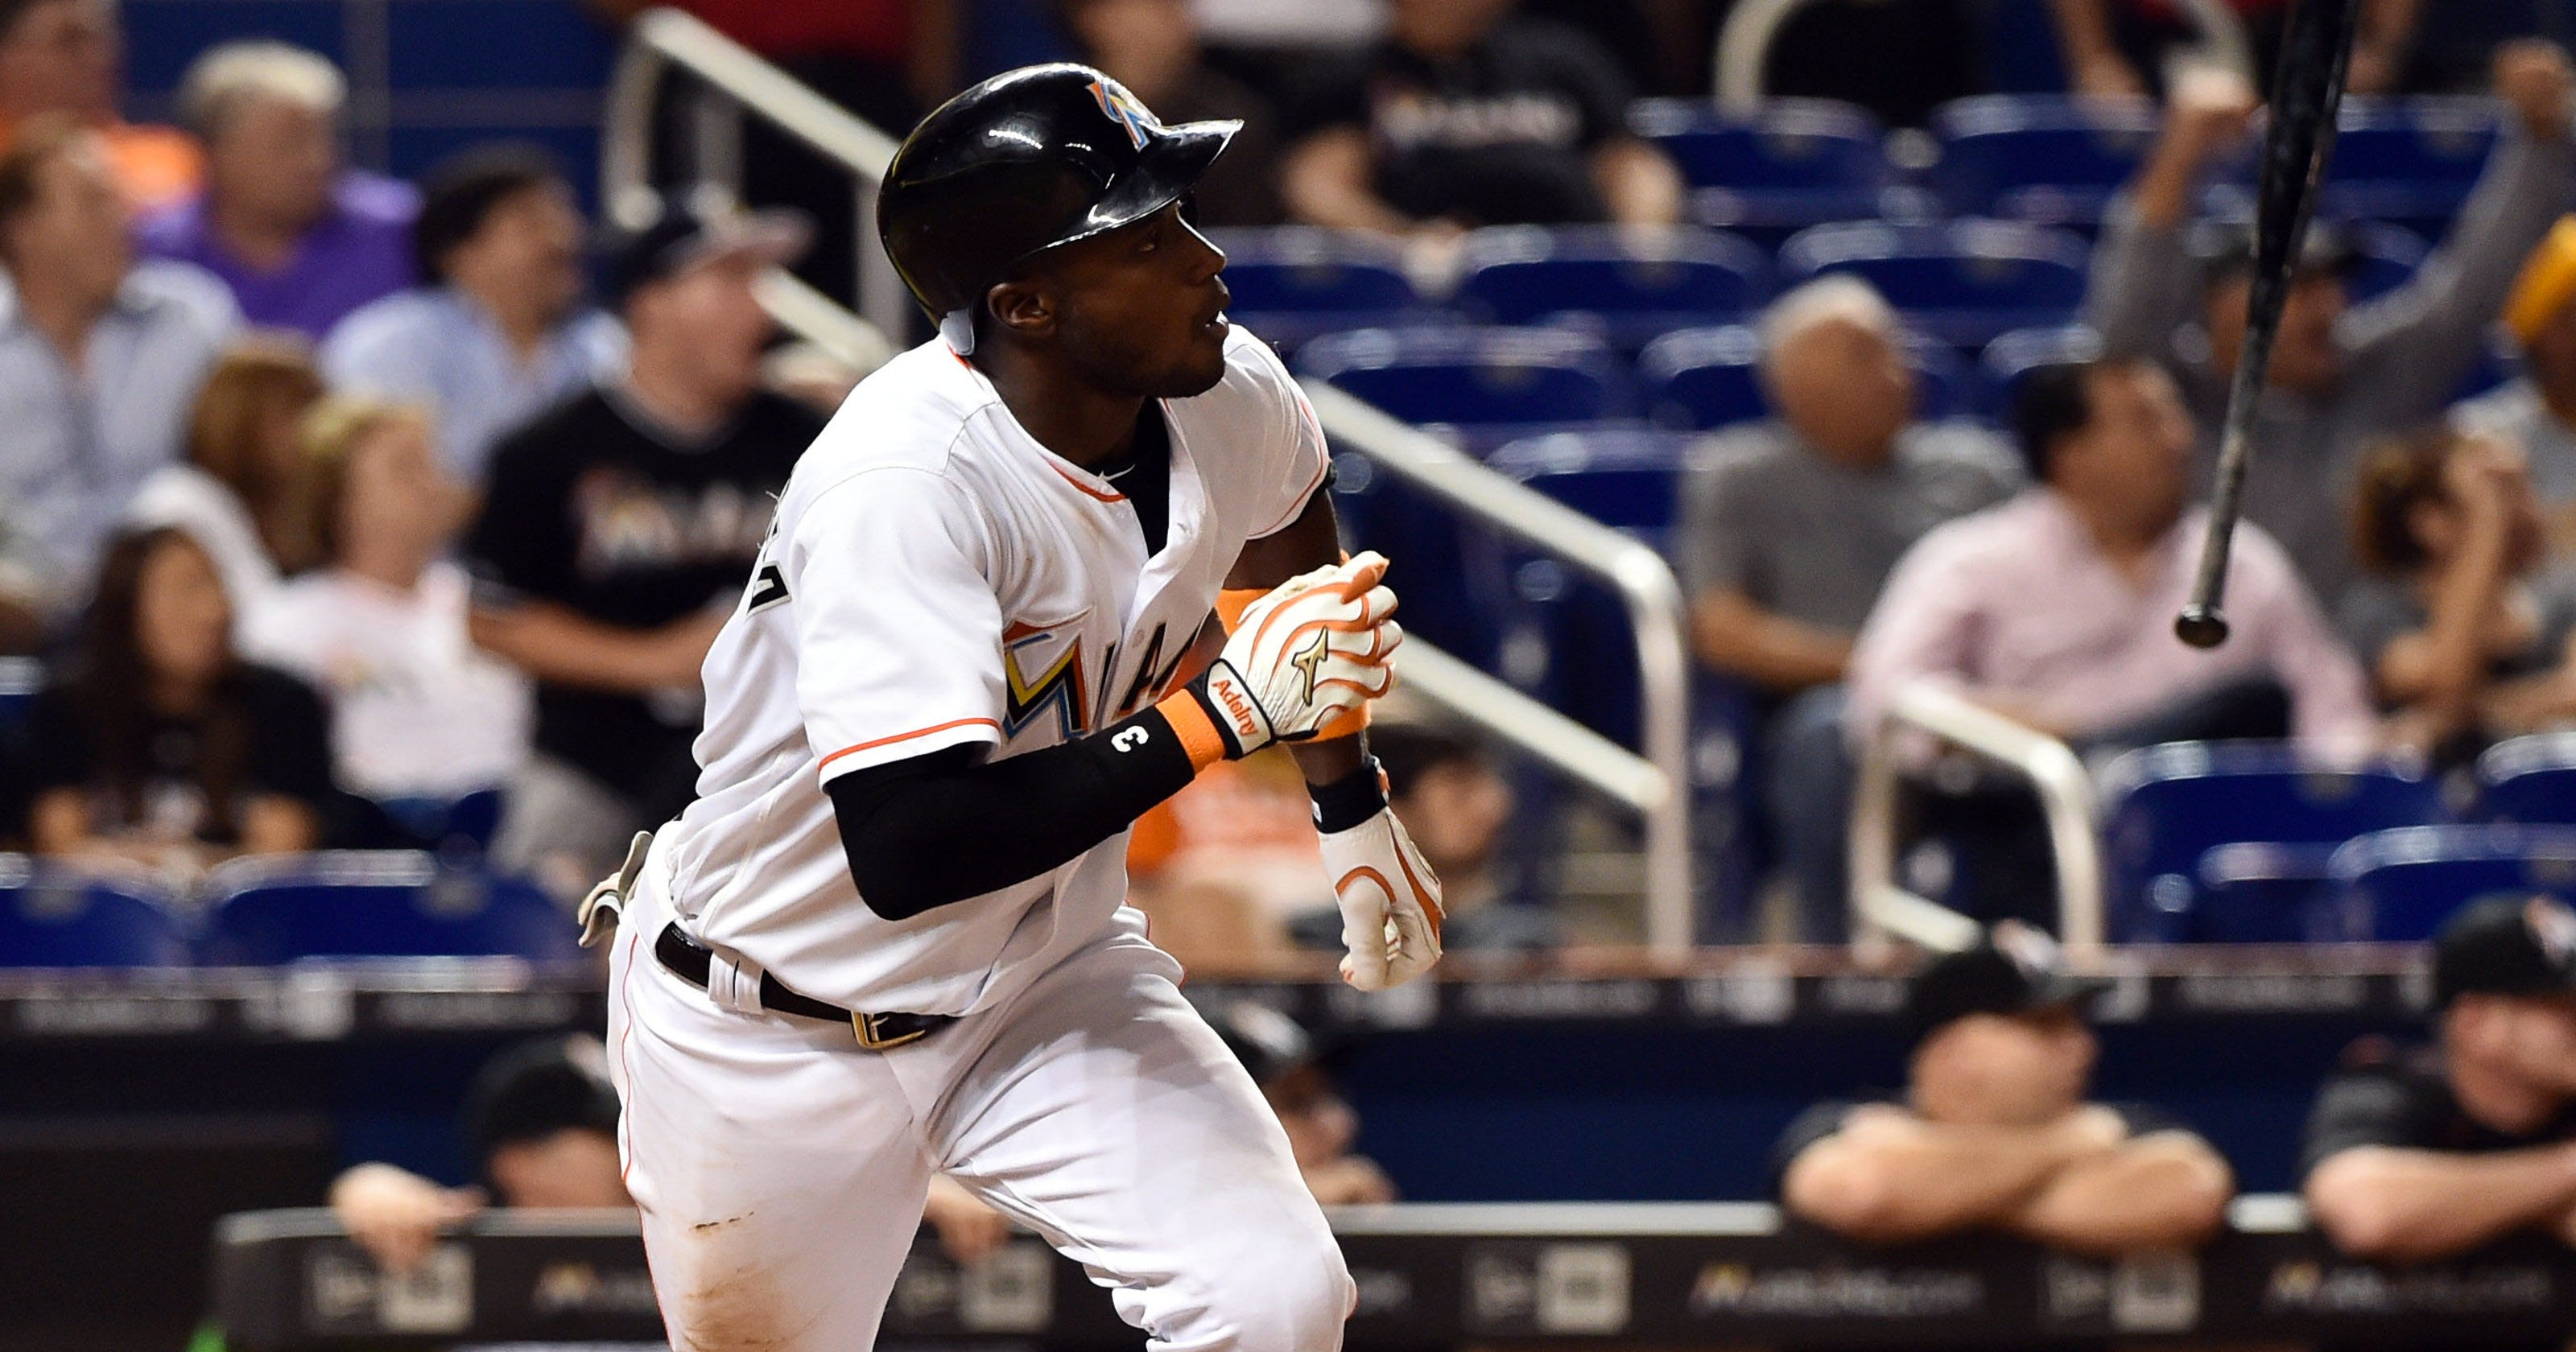 9fda7bcb3021e5 Adeiny Hechavarria RBI double in 8th lifts Marlins past Pirates